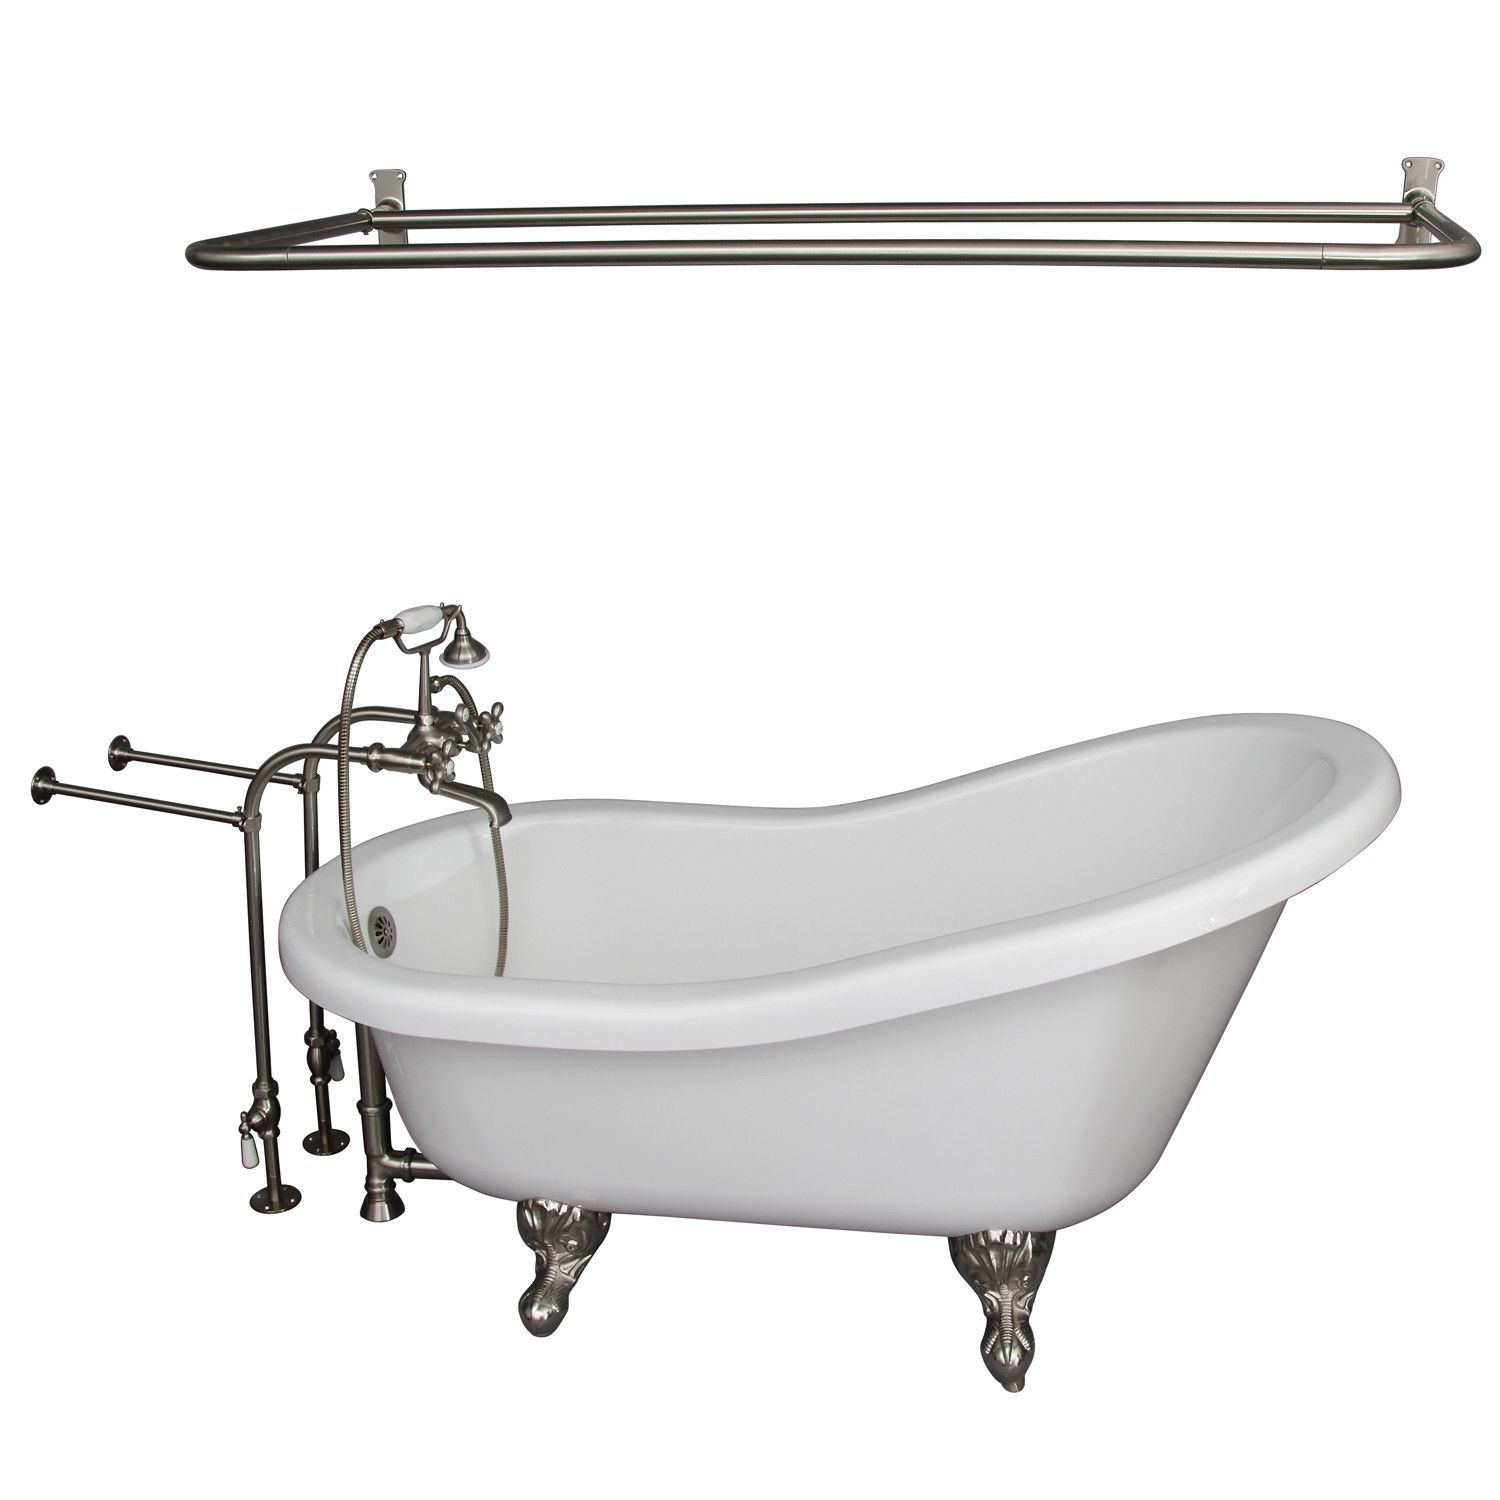 67 X 30 Soaking Bathtub Kit Soaking Bathtubs Clawfoot Bathtub